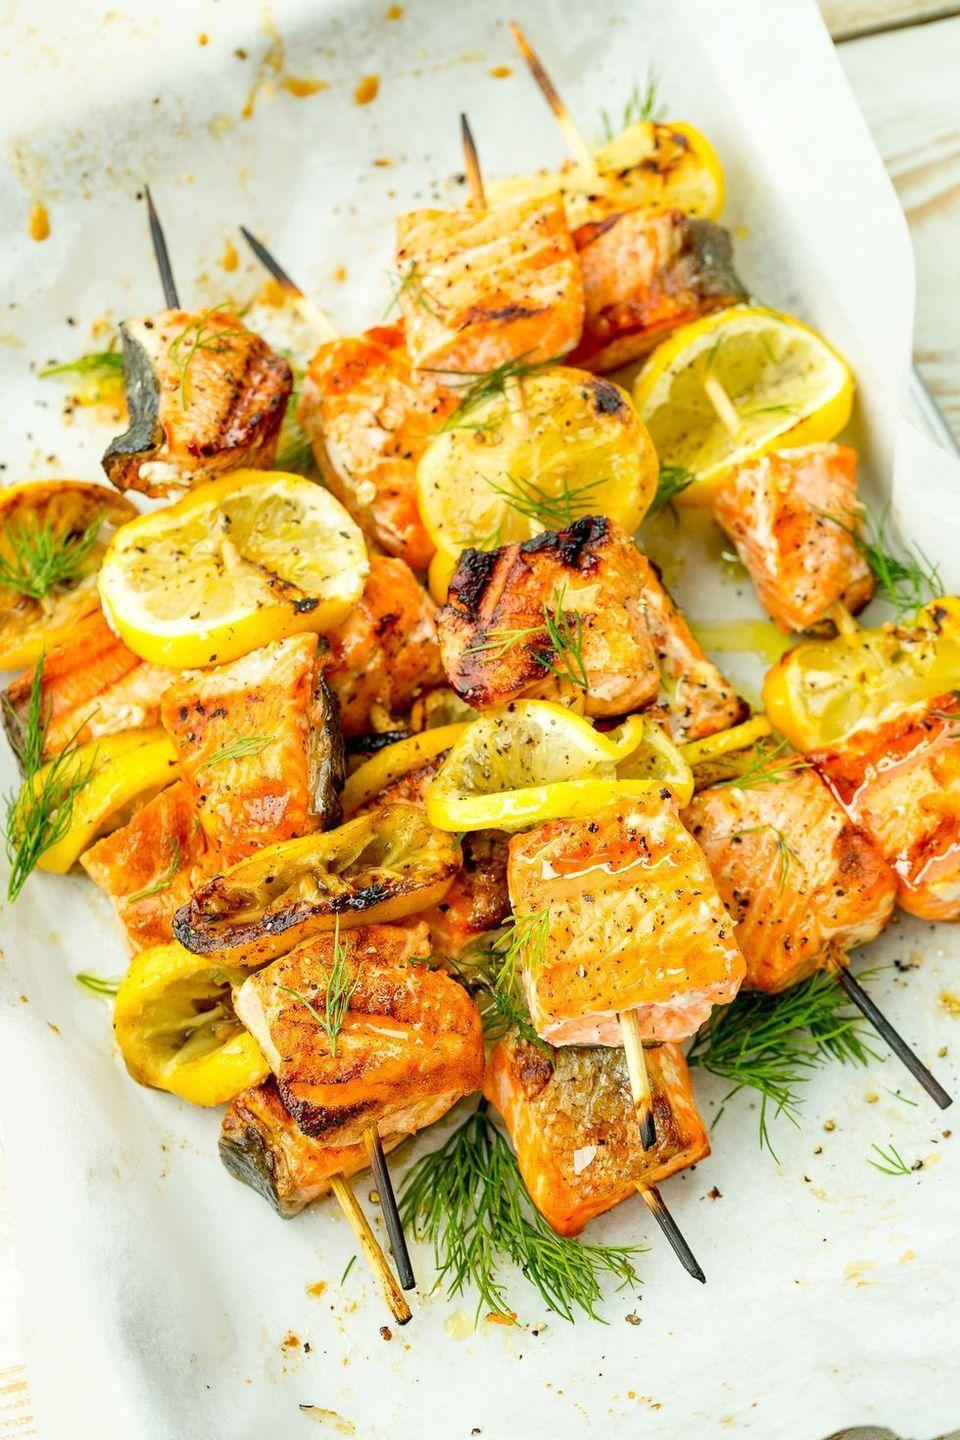 """<p>Lemony salmon kebabs are about to be your go-to for grilling season.</p><p>Get the <a href=""""https://www.delish.com/uk/cooking/recipes/a34615491/mediterranean-salmon-skewers-recipe/"""" rel=""""nofollow noopener"""" target=""""_blank"""" data-ylk=""""slk:Mediterranean Salmon Skewers"""" class=""""link rapid-noclick-resp"""">Mediterranean Salmon Skewers</a> recipe.</p>"""